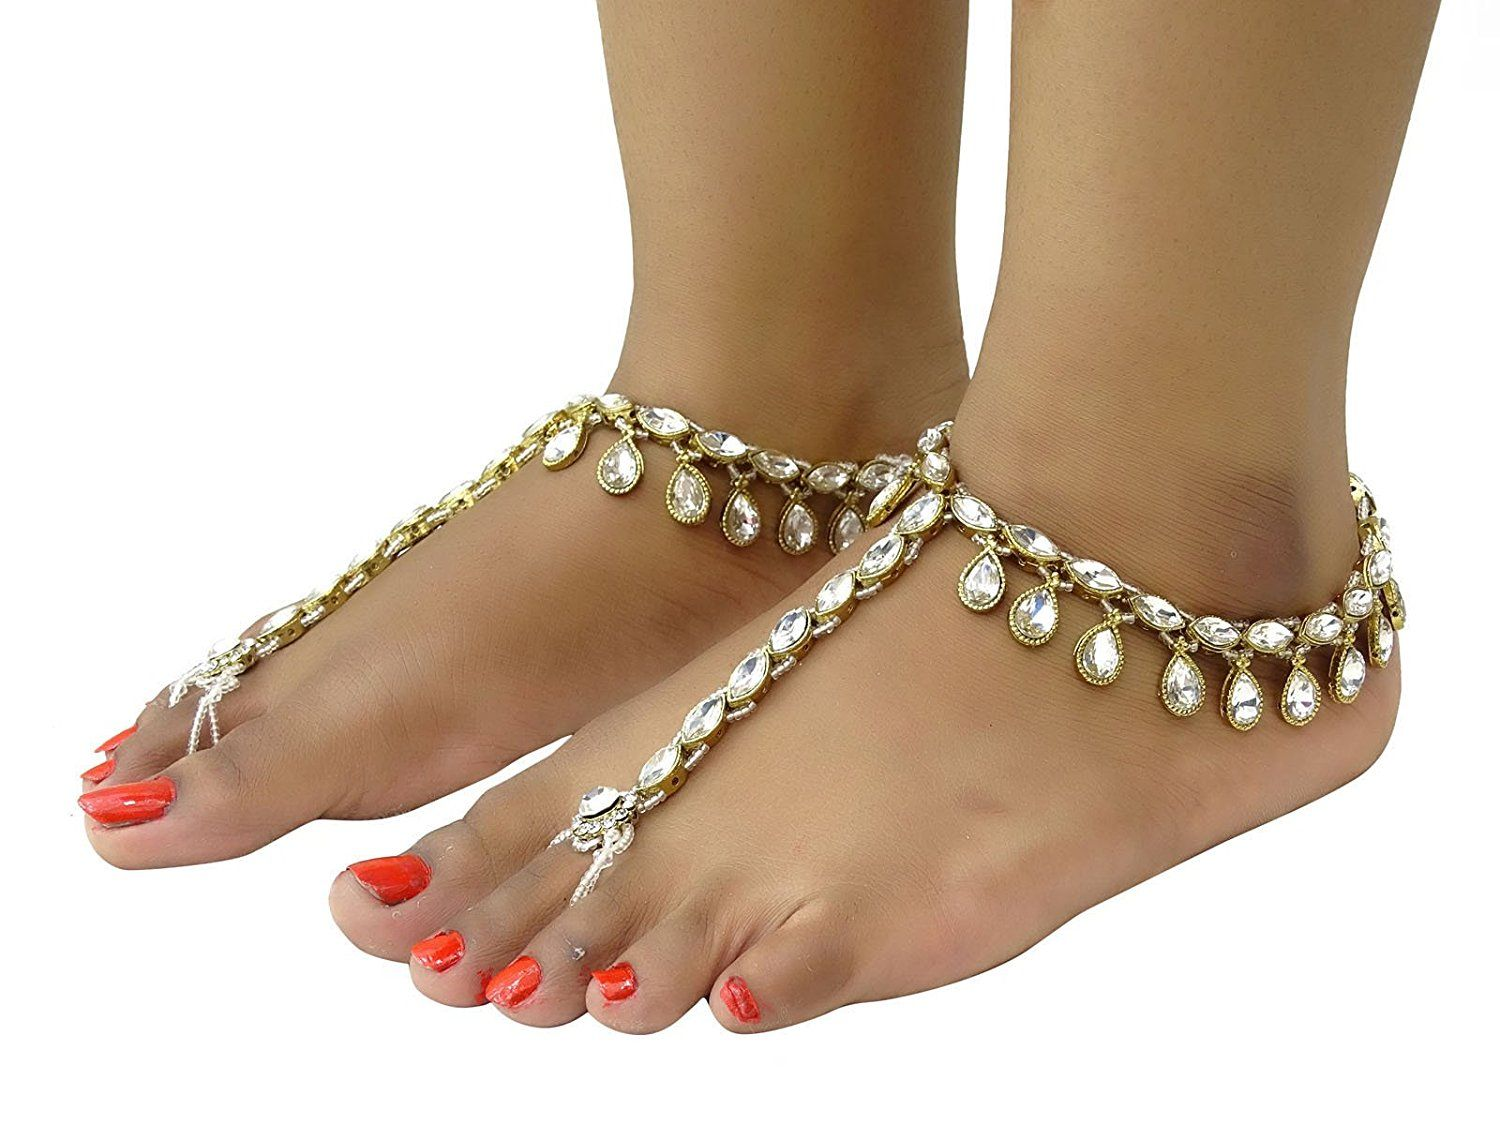 plated jewelry brand in w anklet wholesale women bracelets anklets designer bracelet new gold heart fashion foot items chain color from ankle s leg item